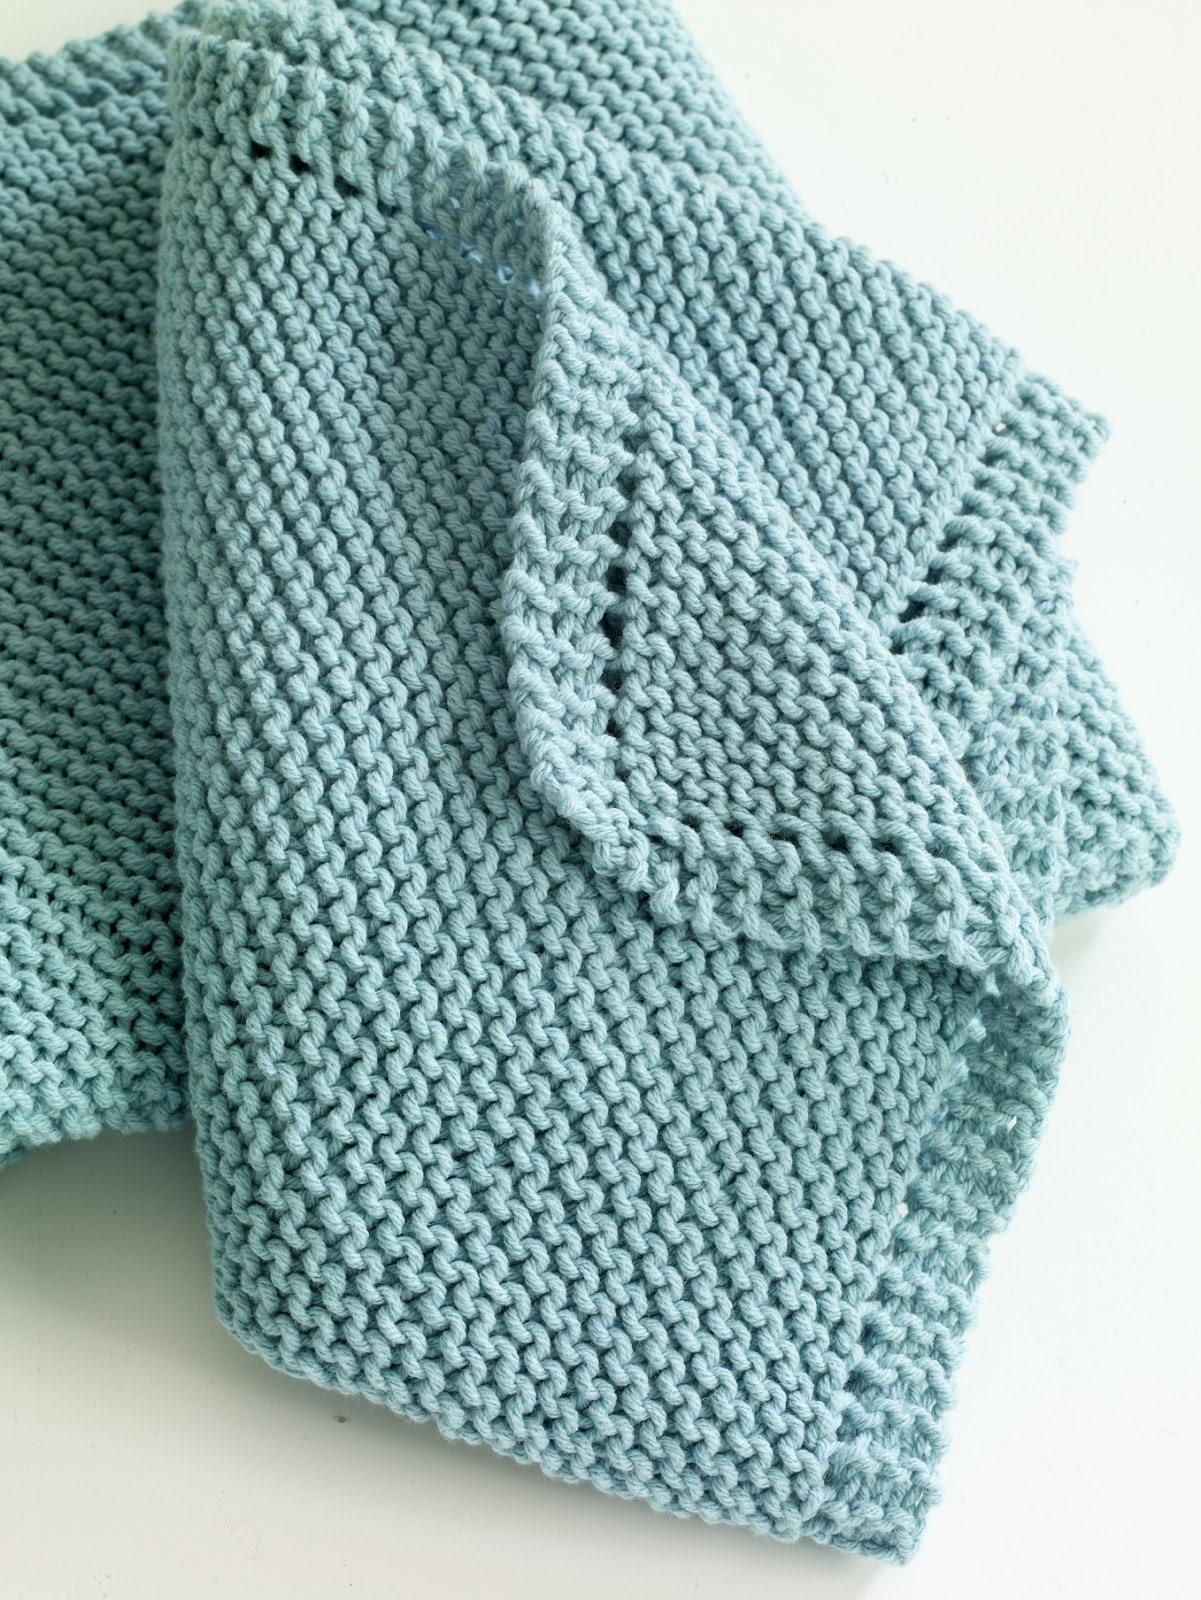 Free Knit Baby Afghan Patterns : Serenity Knits: December 2012